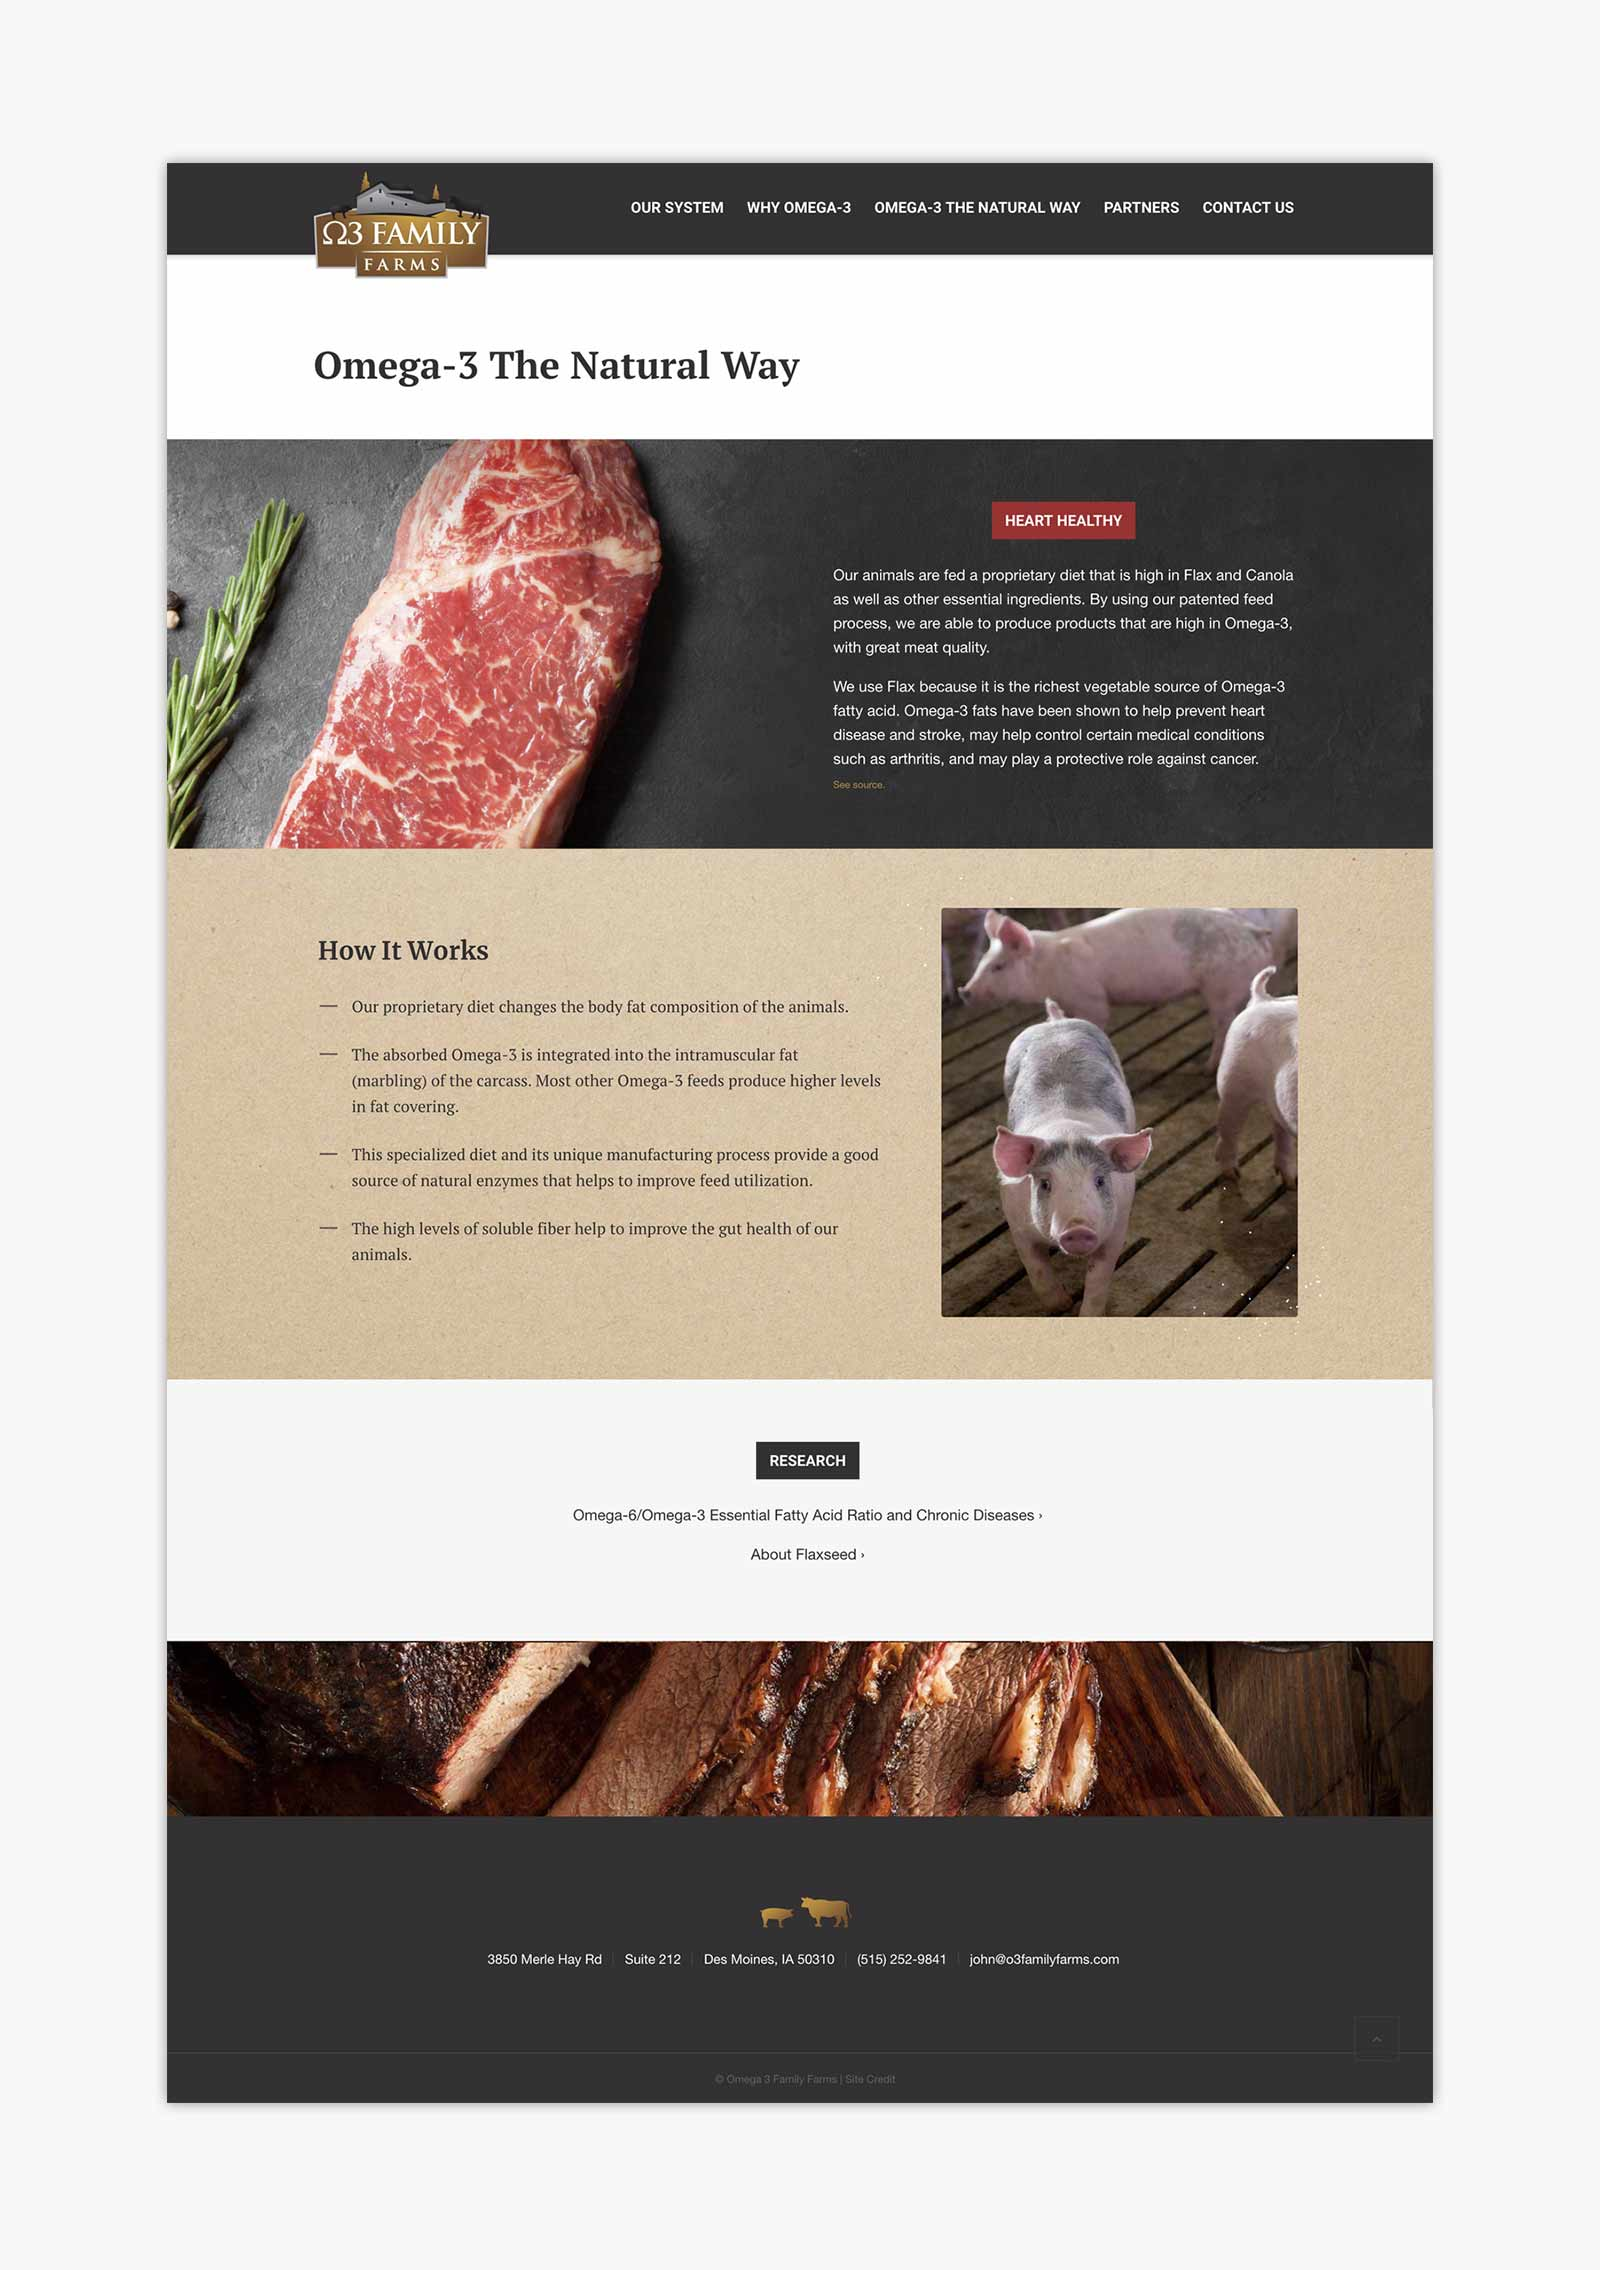 Omega 3 Family Farms - The Natural Way page layout design for website